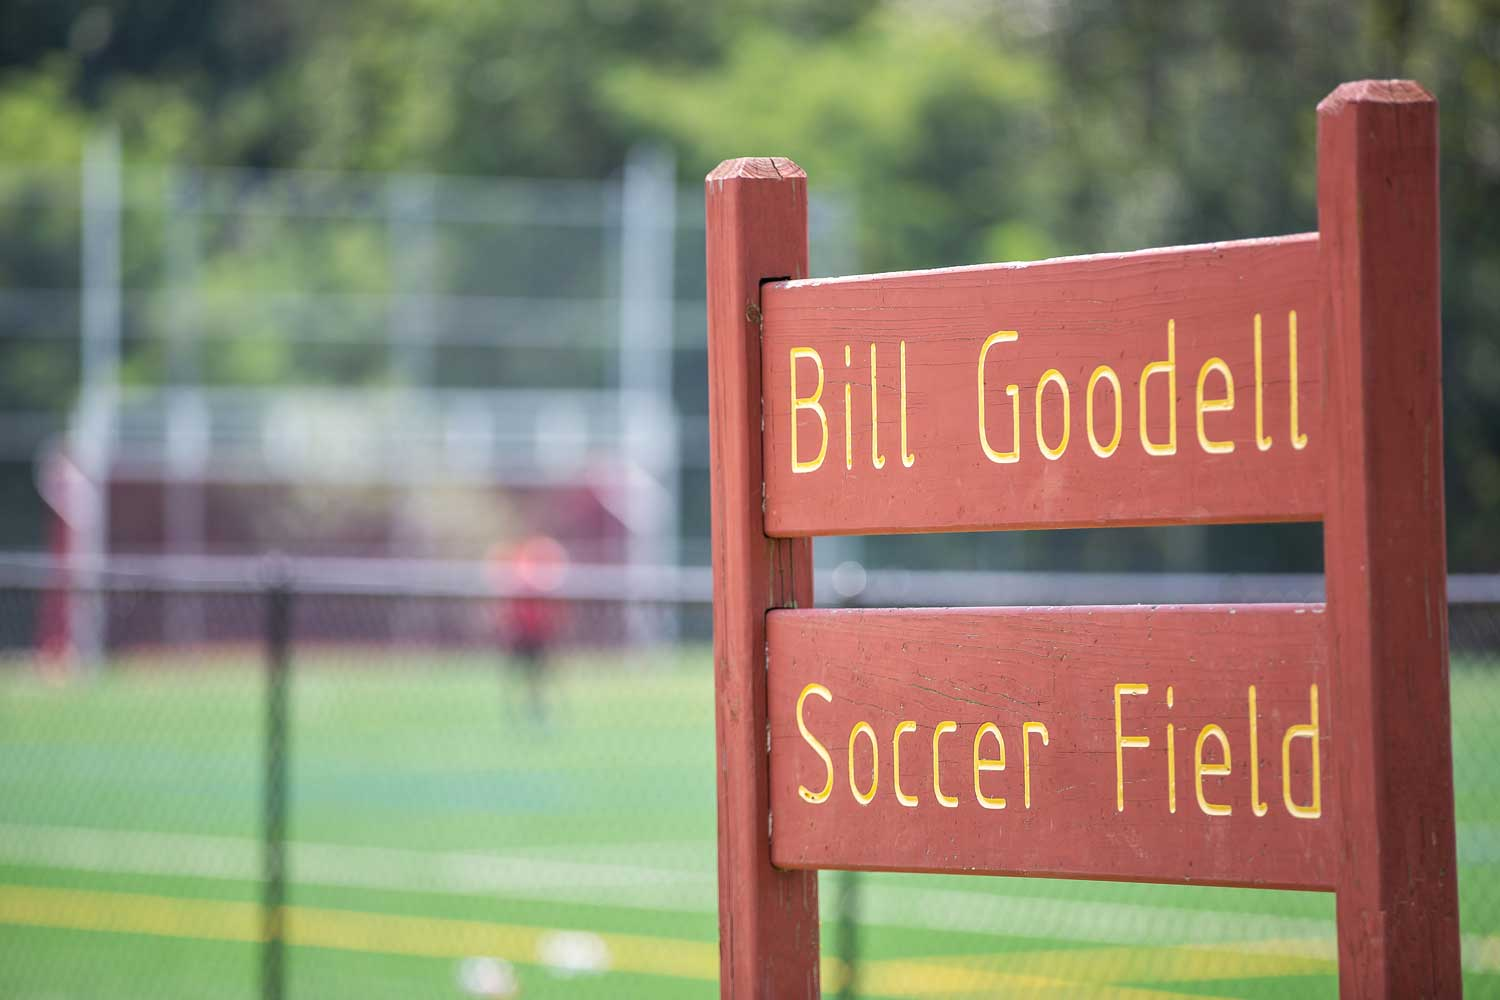 Soccer field 5 minutes from Barcroft Plaza Apartments in Falls Church, VA